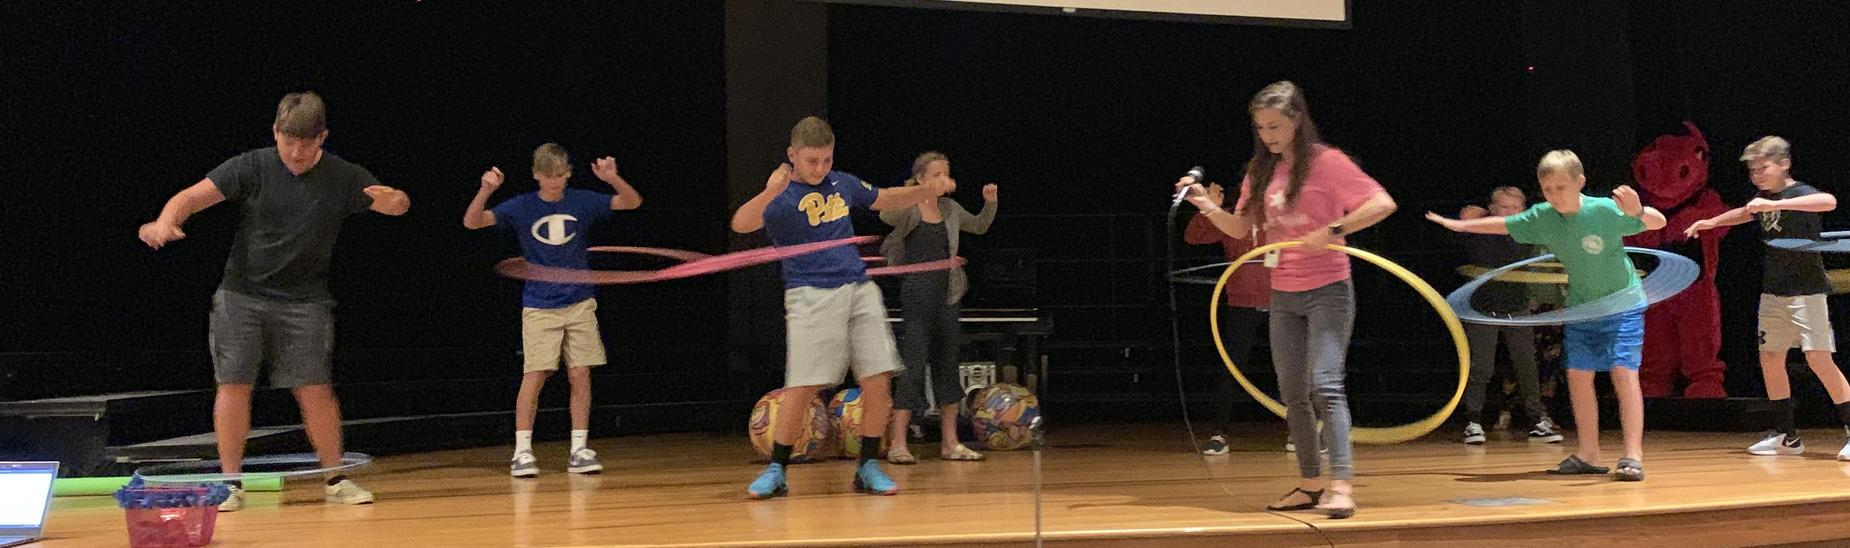 PBIS Hula Hoop Competition